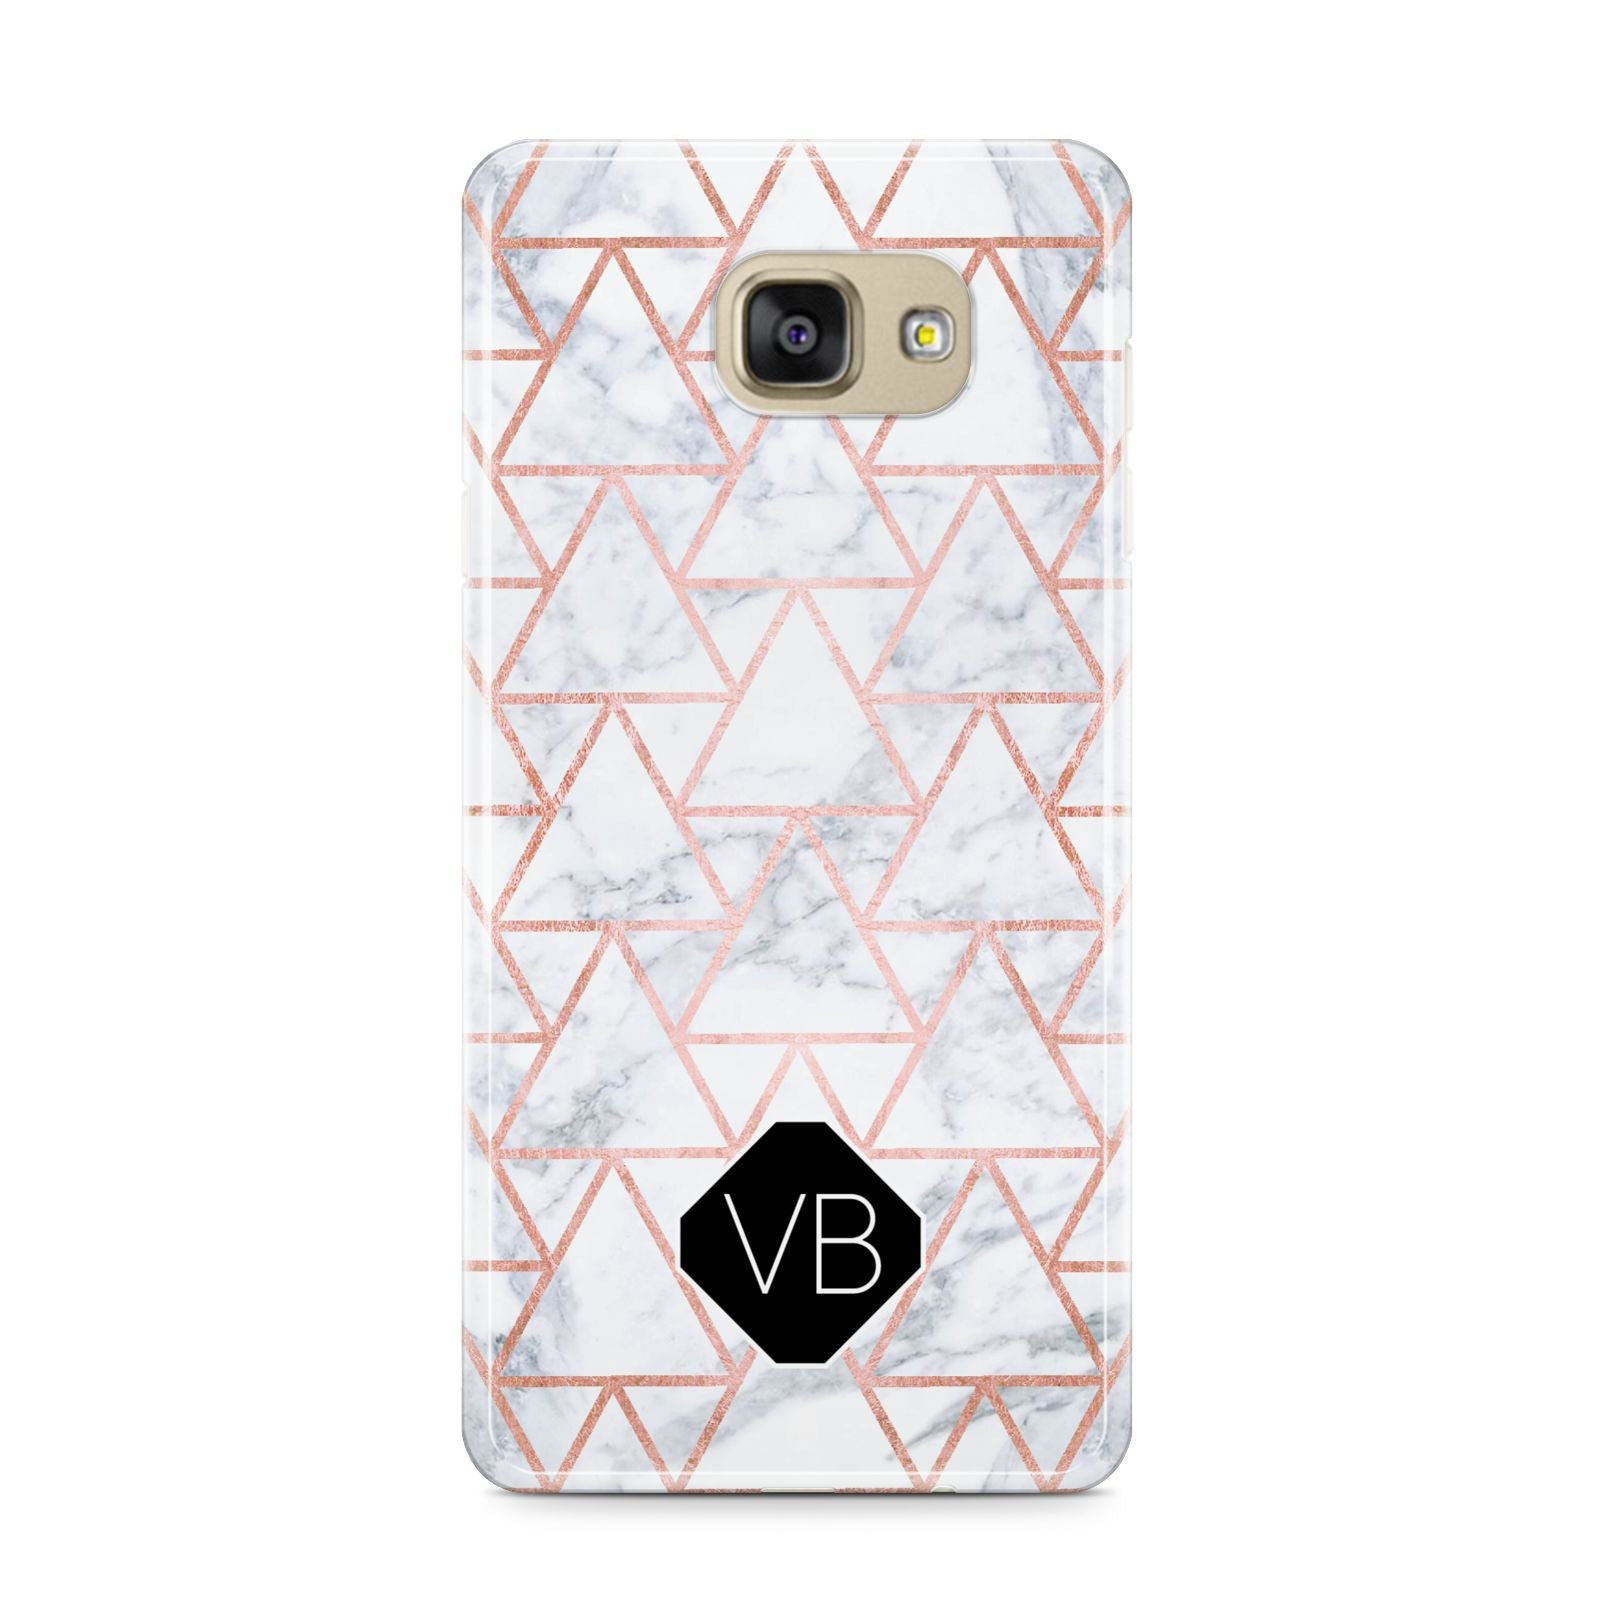 Personalised Rose Gold Grey Marble Hexagon Samsung Galaxy A9 2016 Case on gold phone